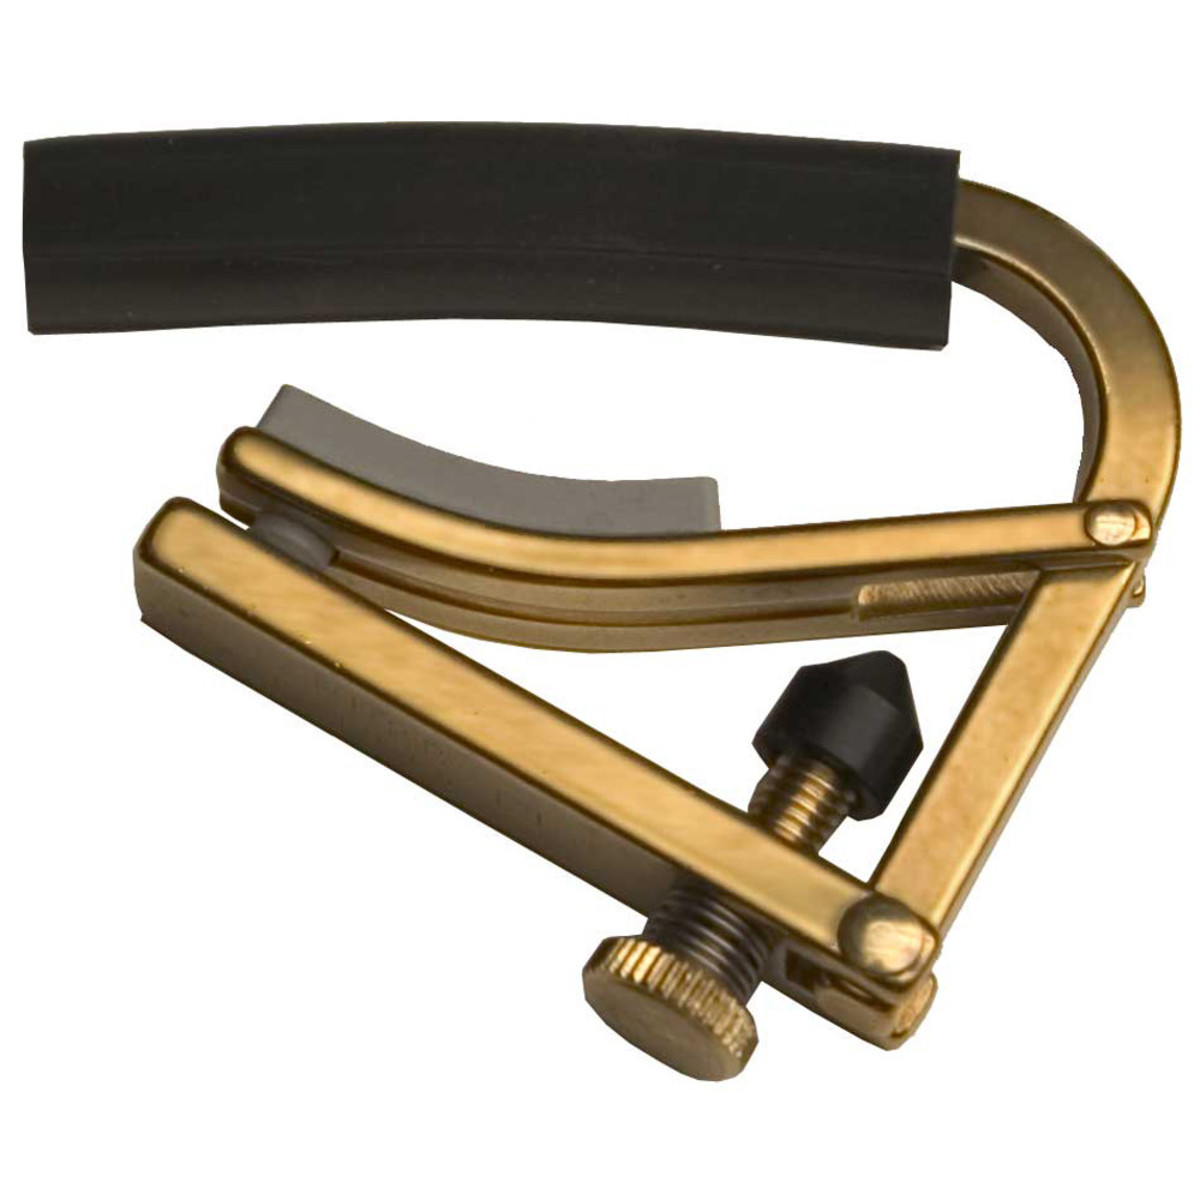 disc shubb c4b radically curved capo brass gear4music. Black Bedroom Furniture Sets. Home Design Ideas